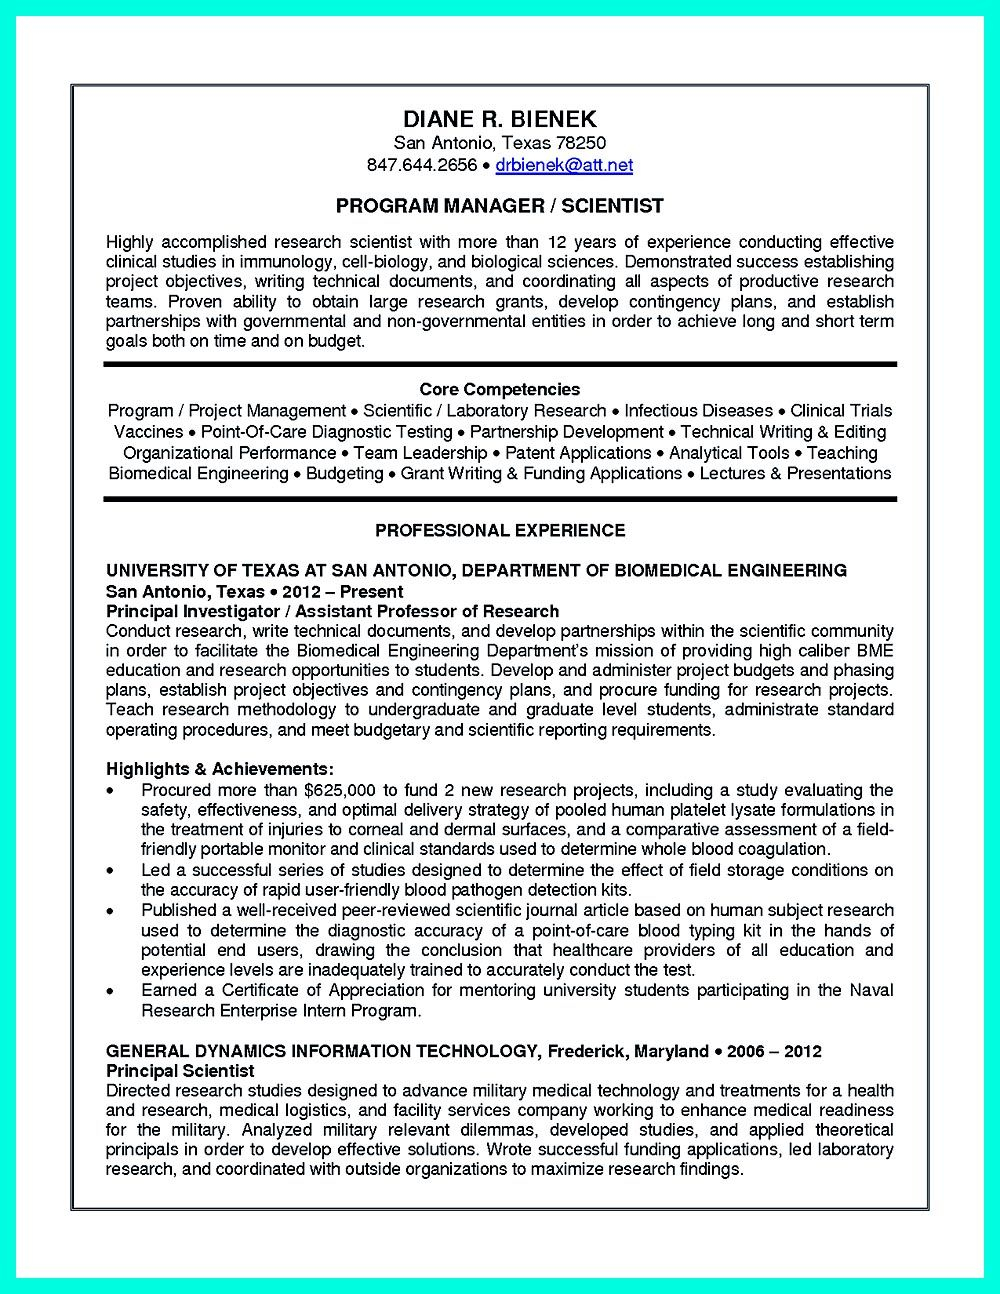 Research Coordinator Resume - Clinical Research associate Resume Objectives are Needed to Convince